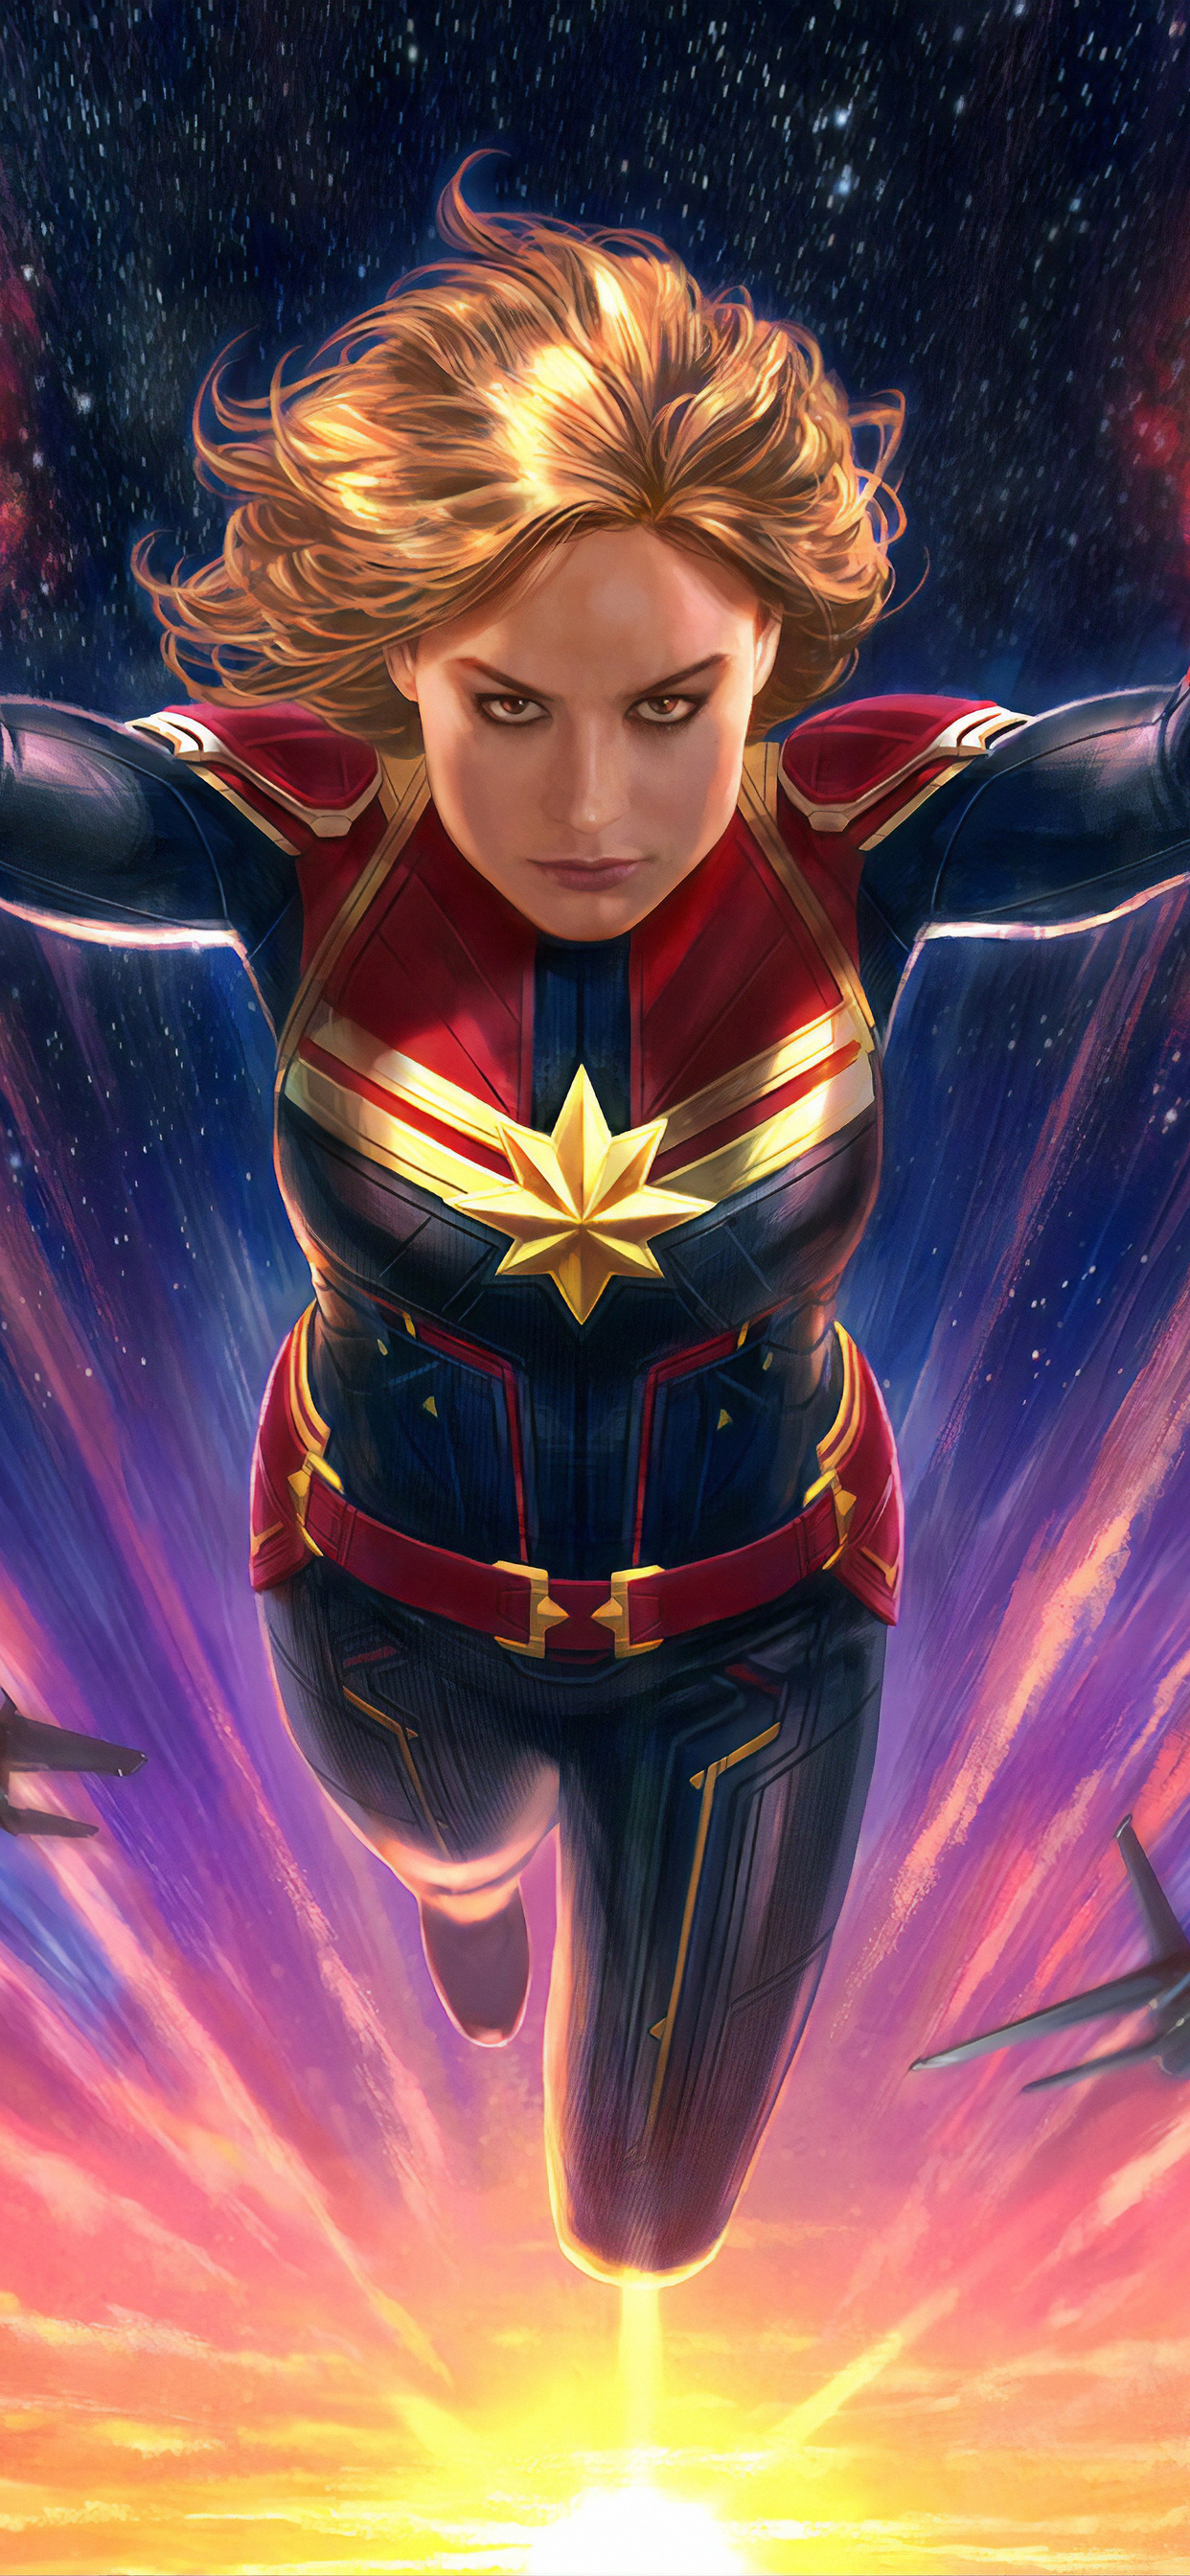 1242x2688 Captain Marvel 4k Arts Iphone Xs Max Hd 4k Wallpapers Images Backgrounds Photos And Pictures